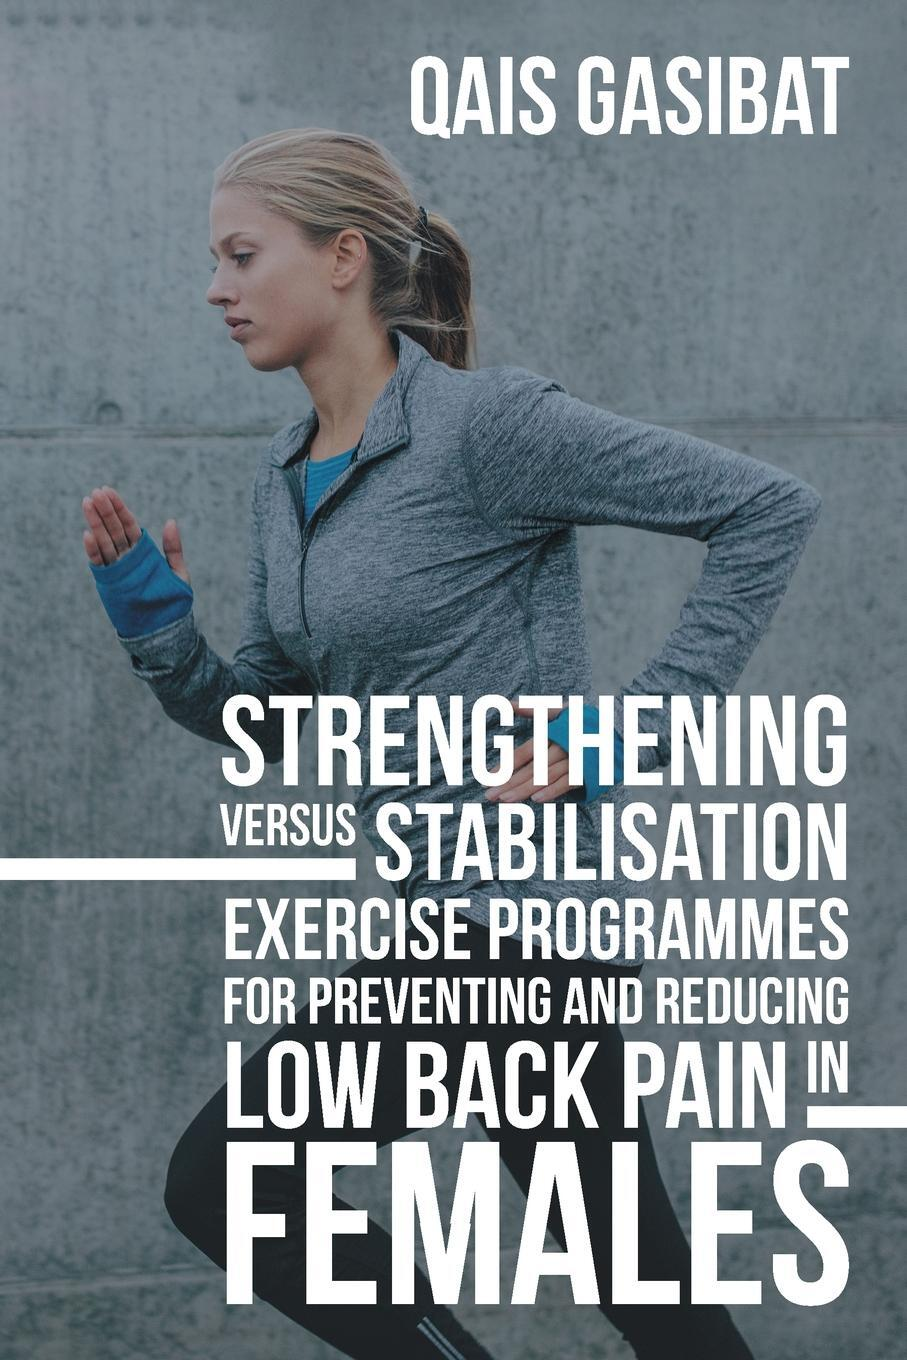 Strengthening Versus Stabilisation Exercise Programmes for Preventing and Reducing Low Back Pain in Females